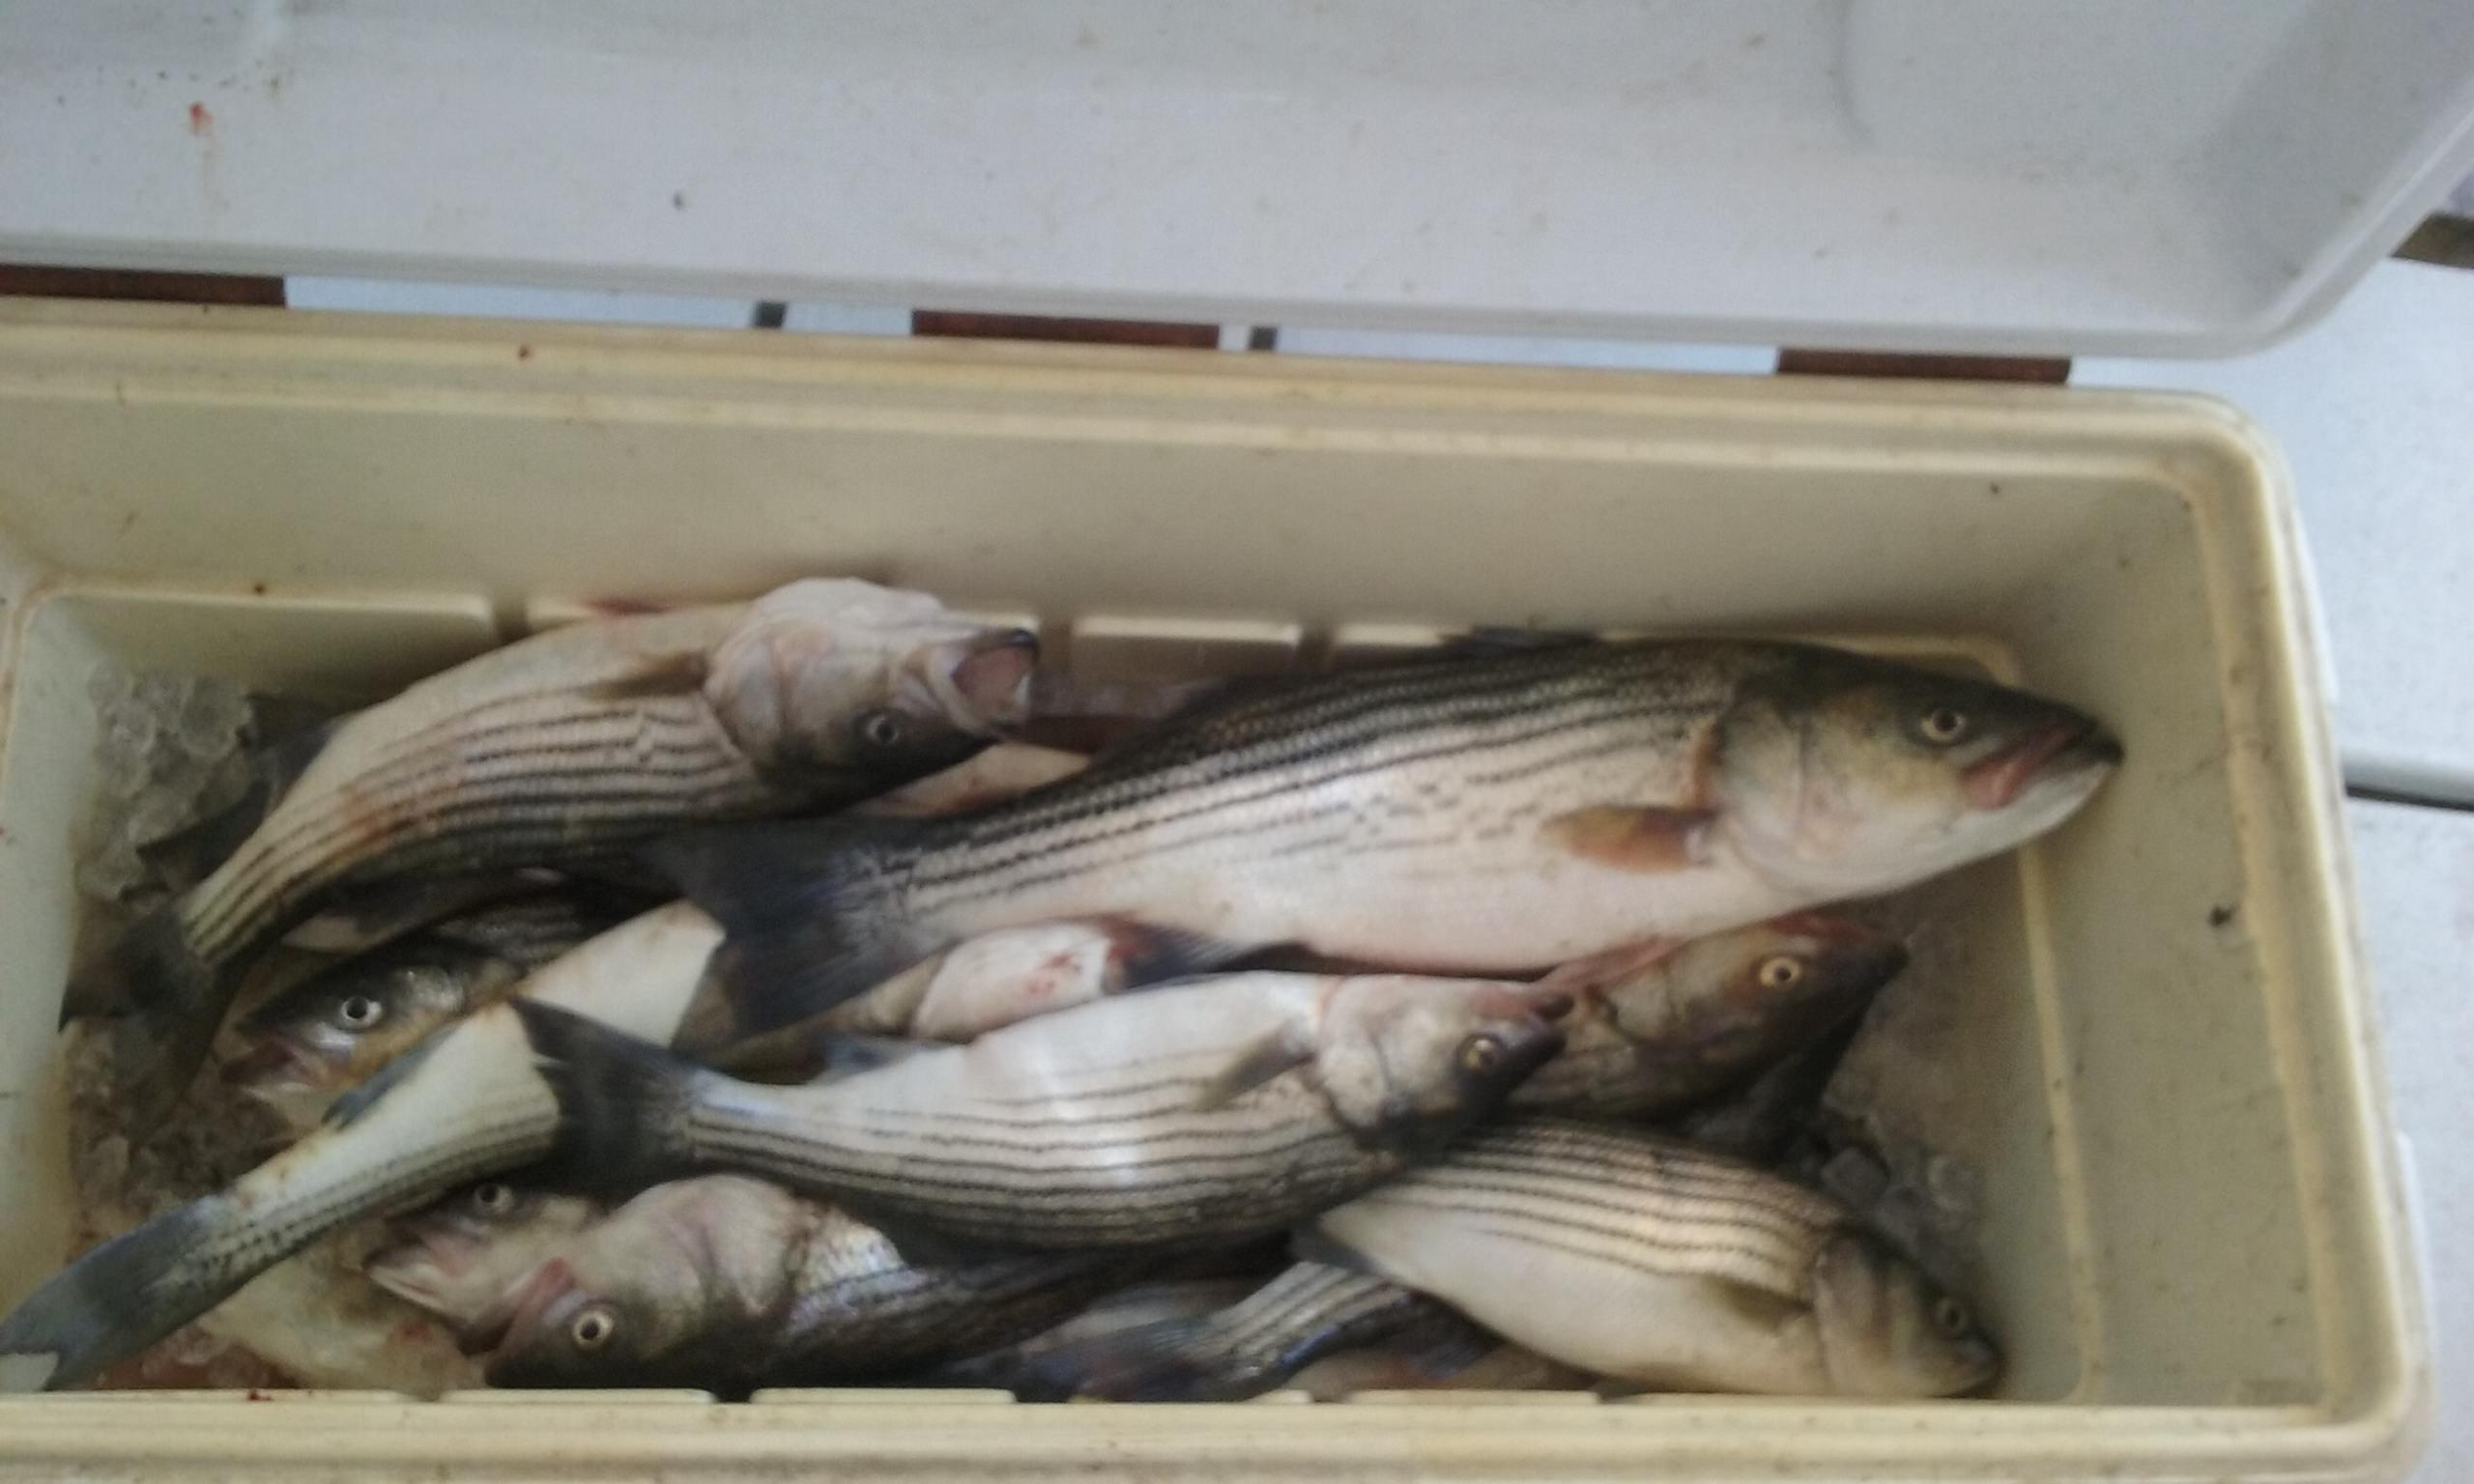 A Limit of Maryland Rockfish for 10 People!